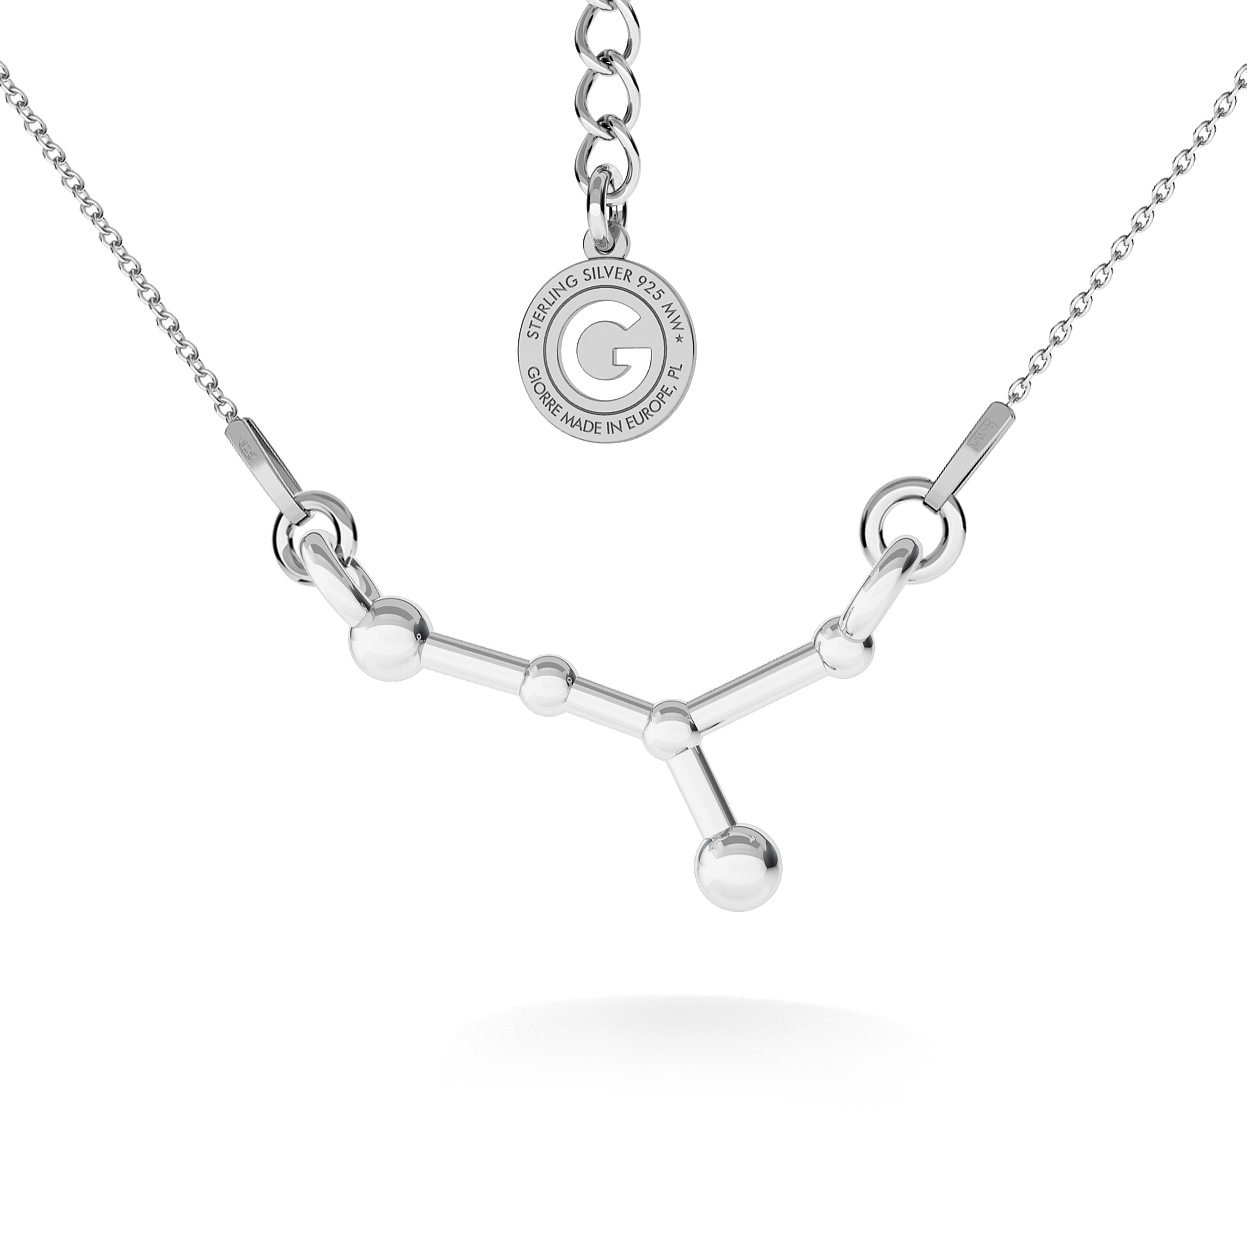 CONSTELLATION BIG DIPPER NECKLACE SILVER 925